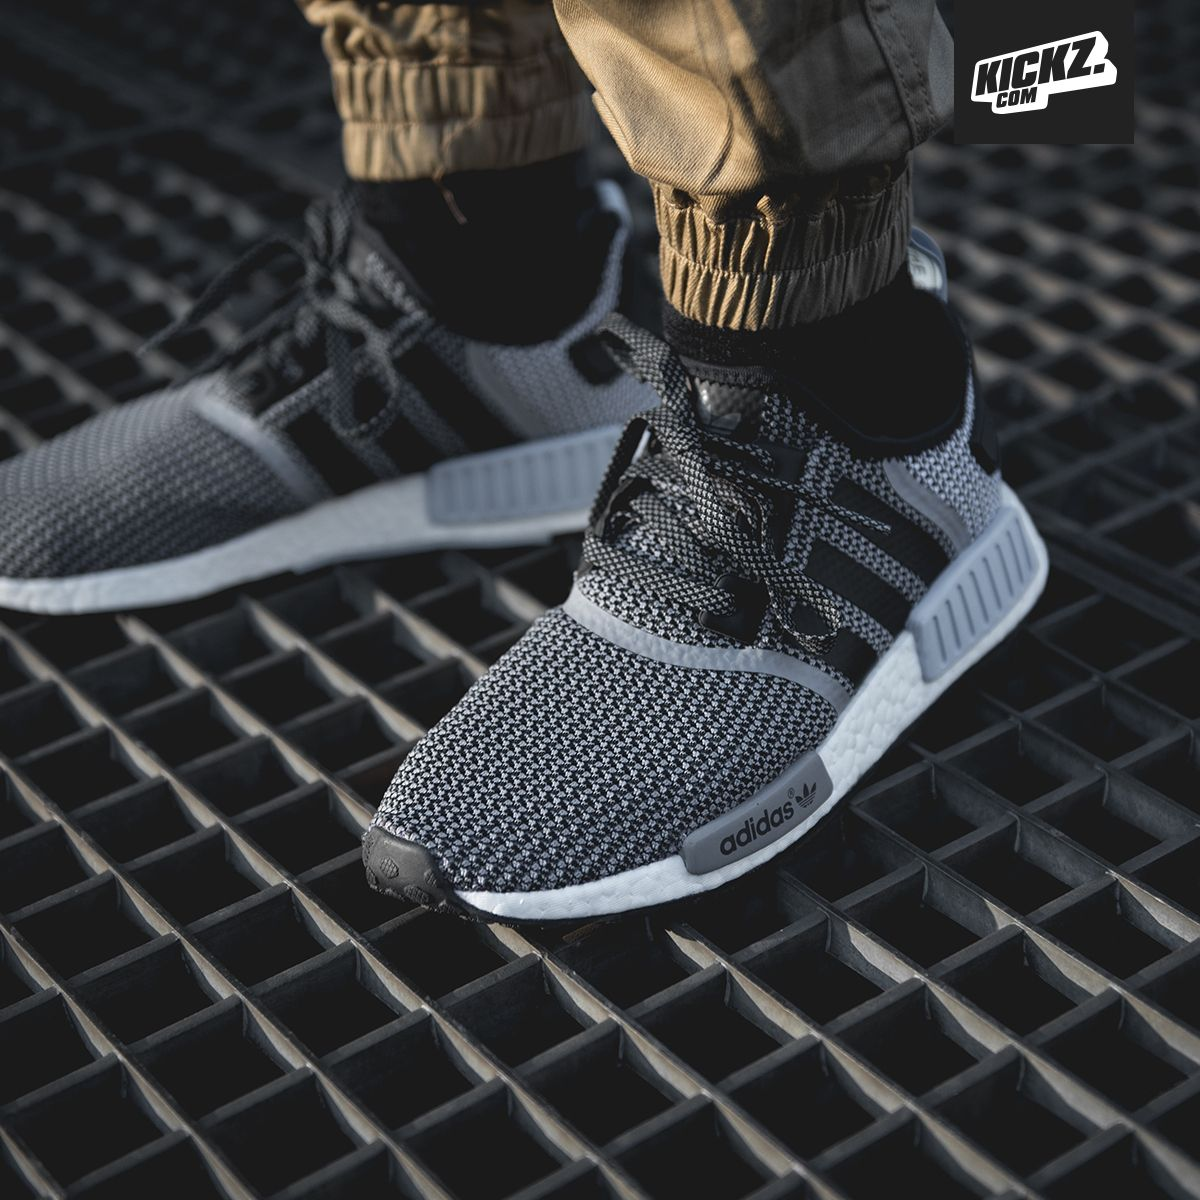 The adidas NMD R1 core black/cool blue